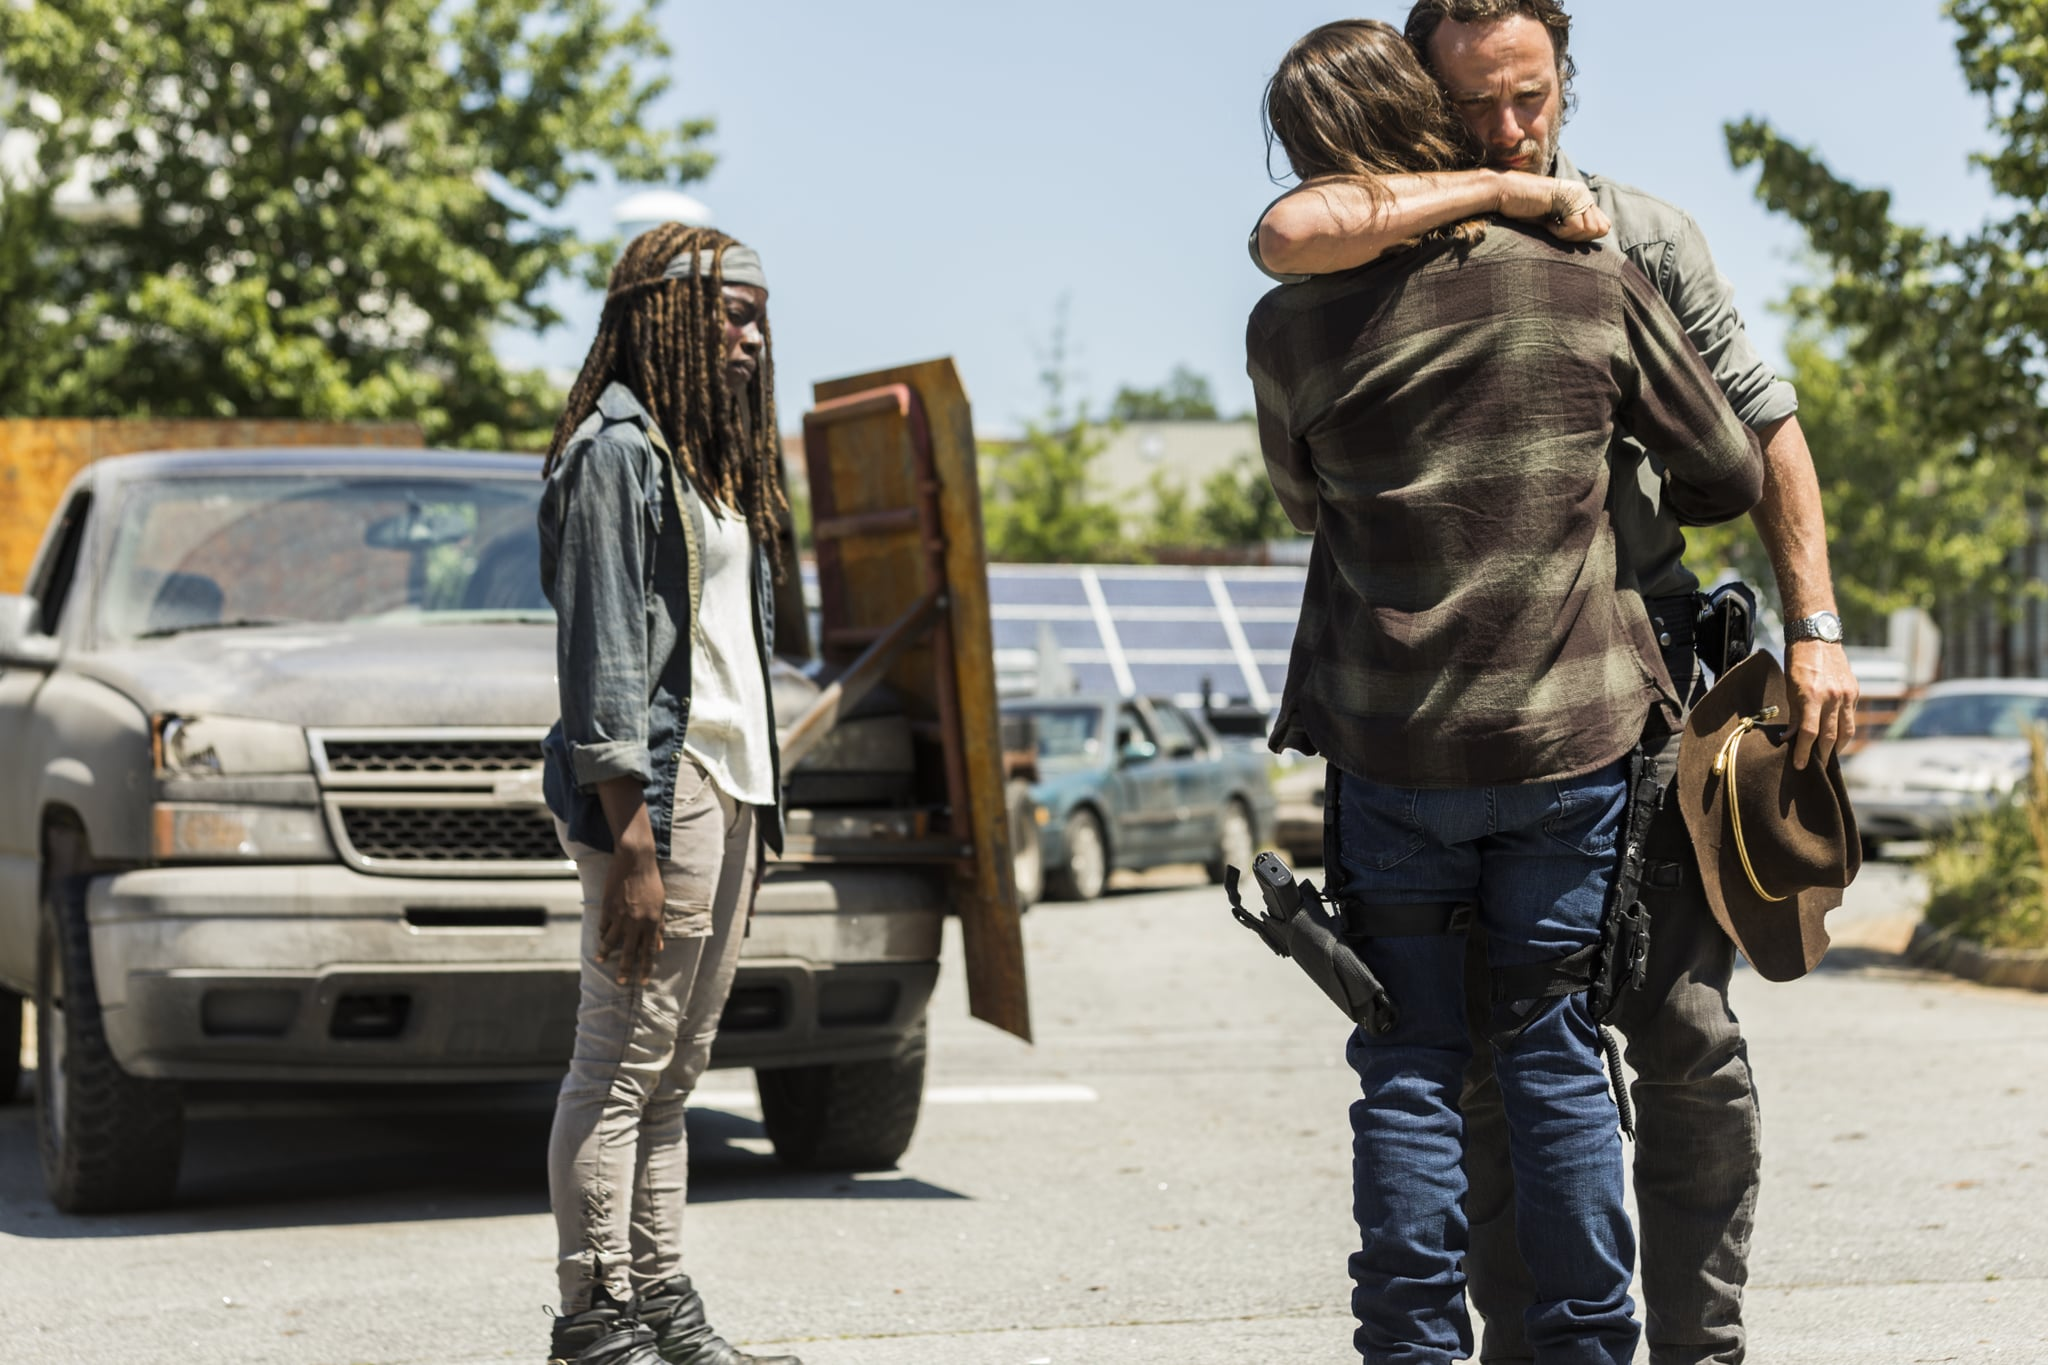 AMC's WALKING DEAD Audience Drops 35% From Last Season Premiere